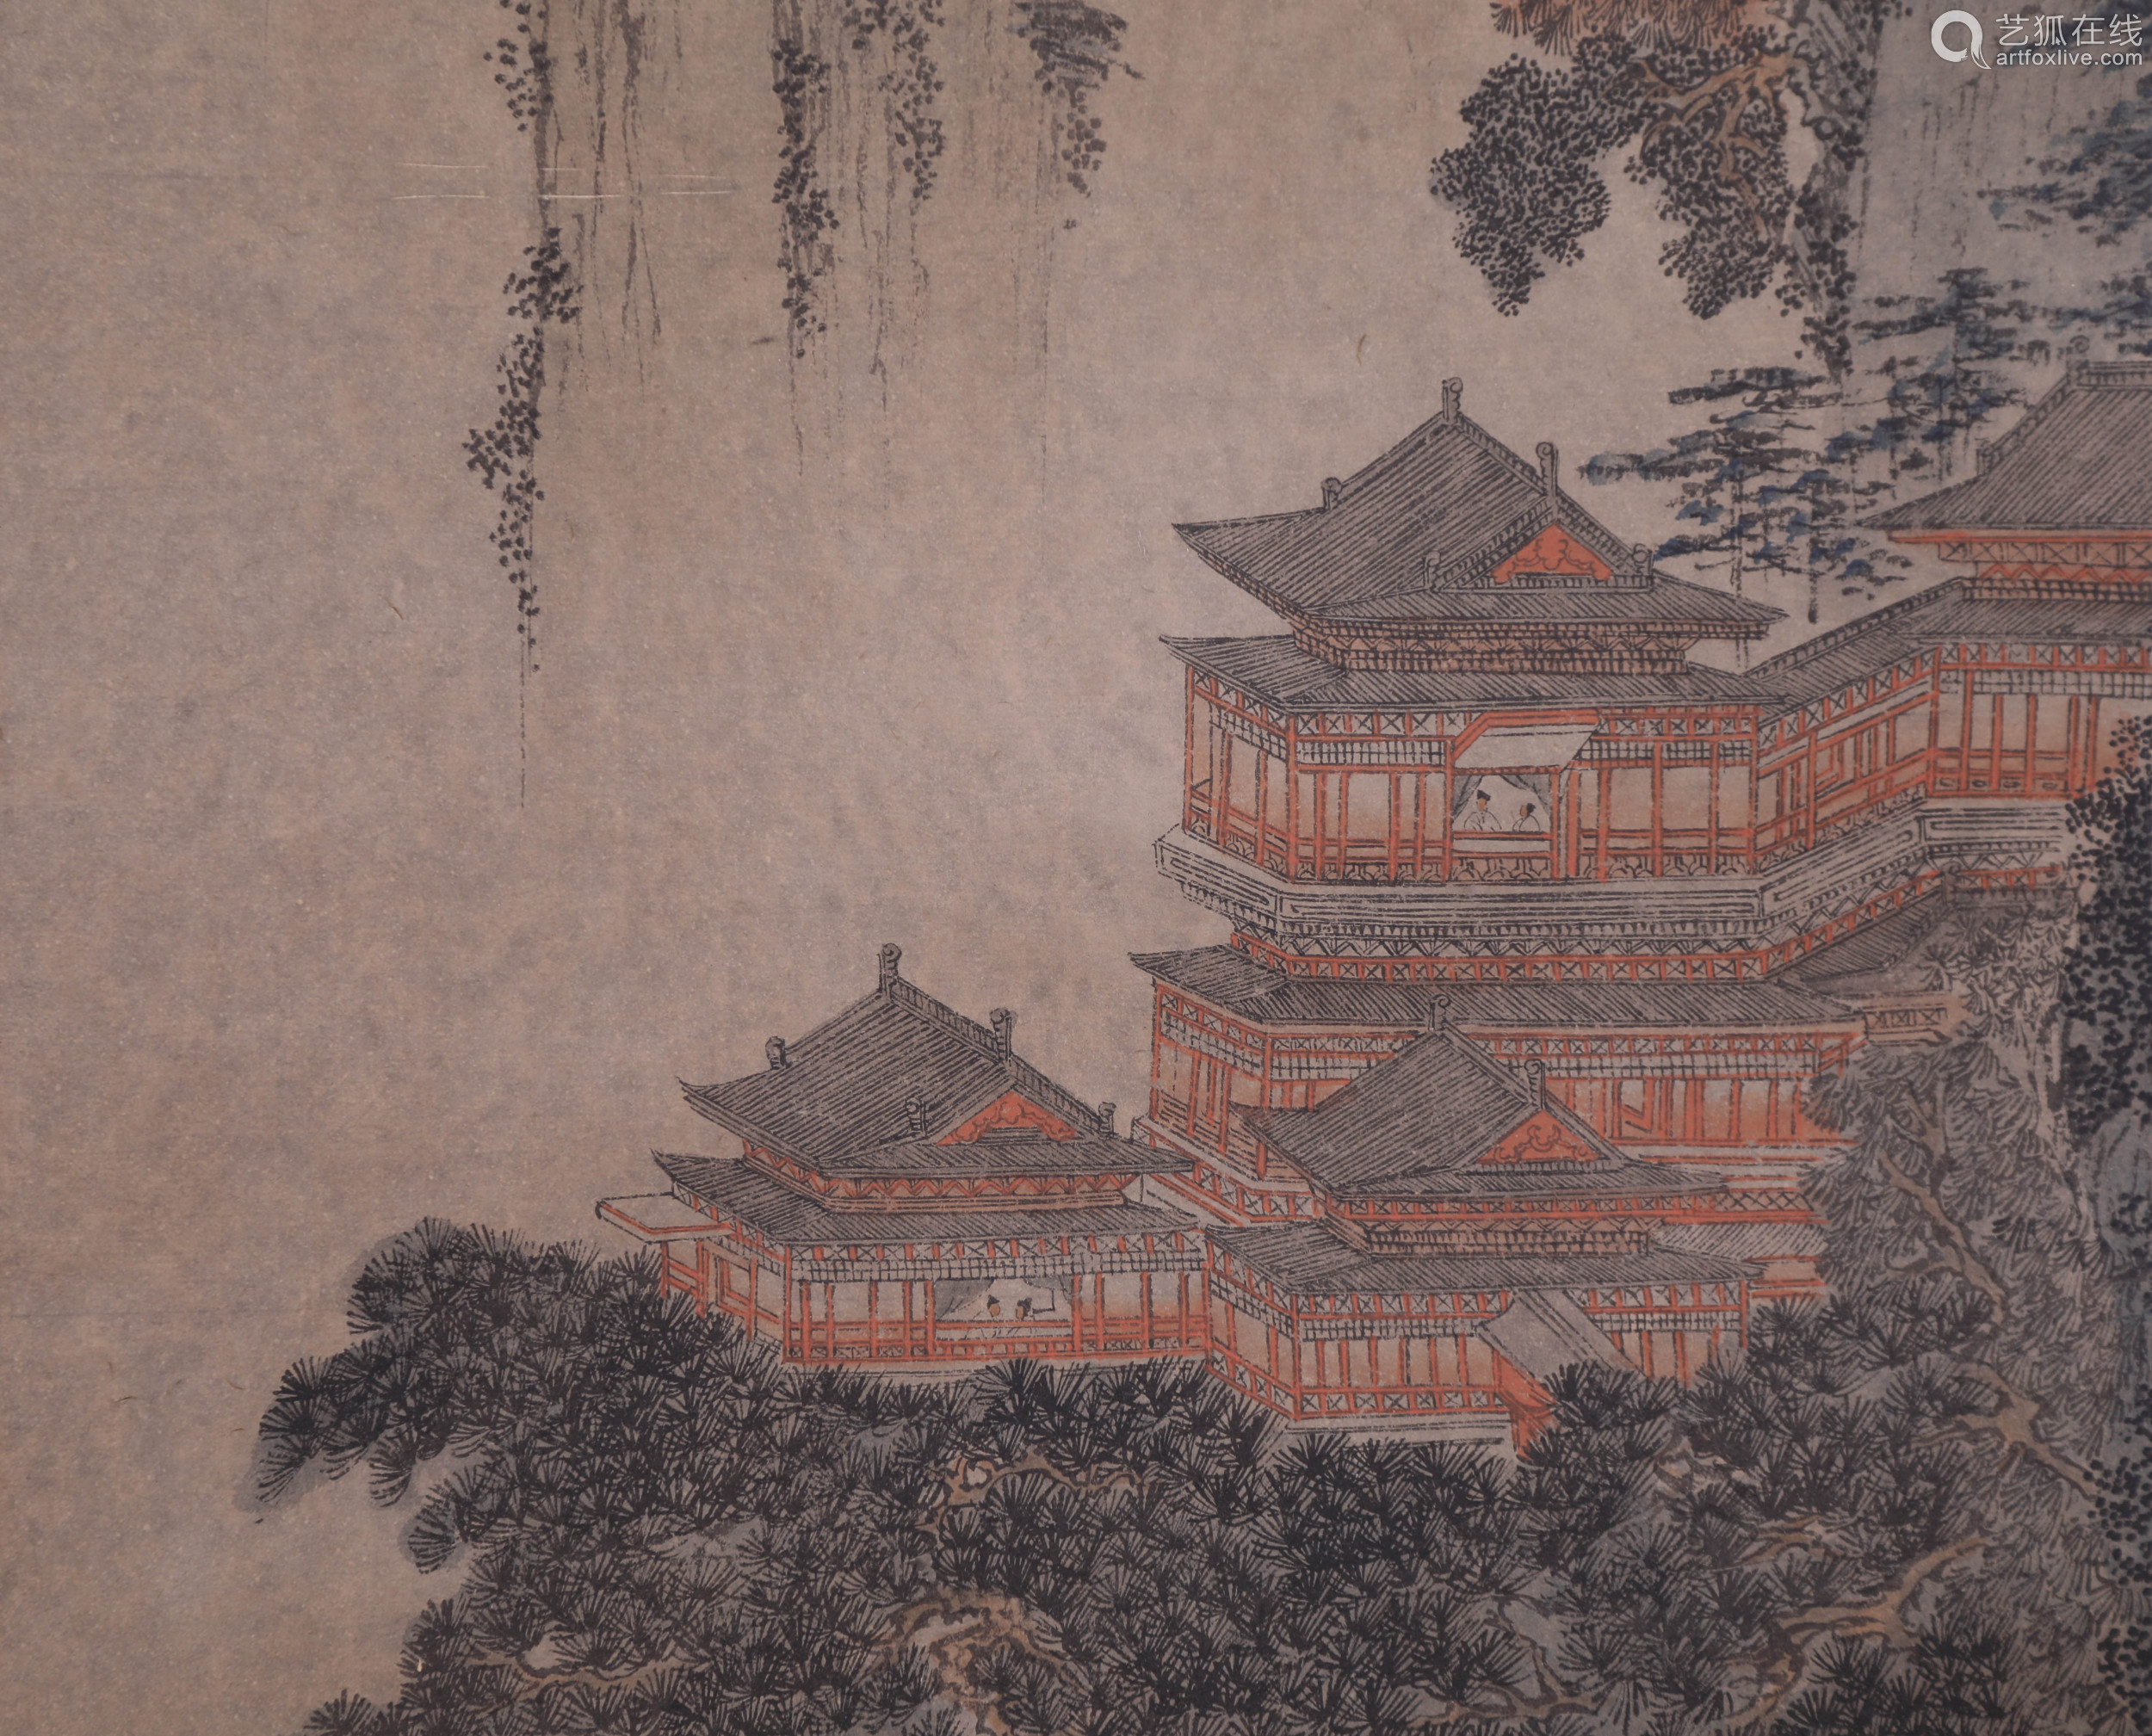 Tang Yin - Painting of Immortal Chinese Pavilion